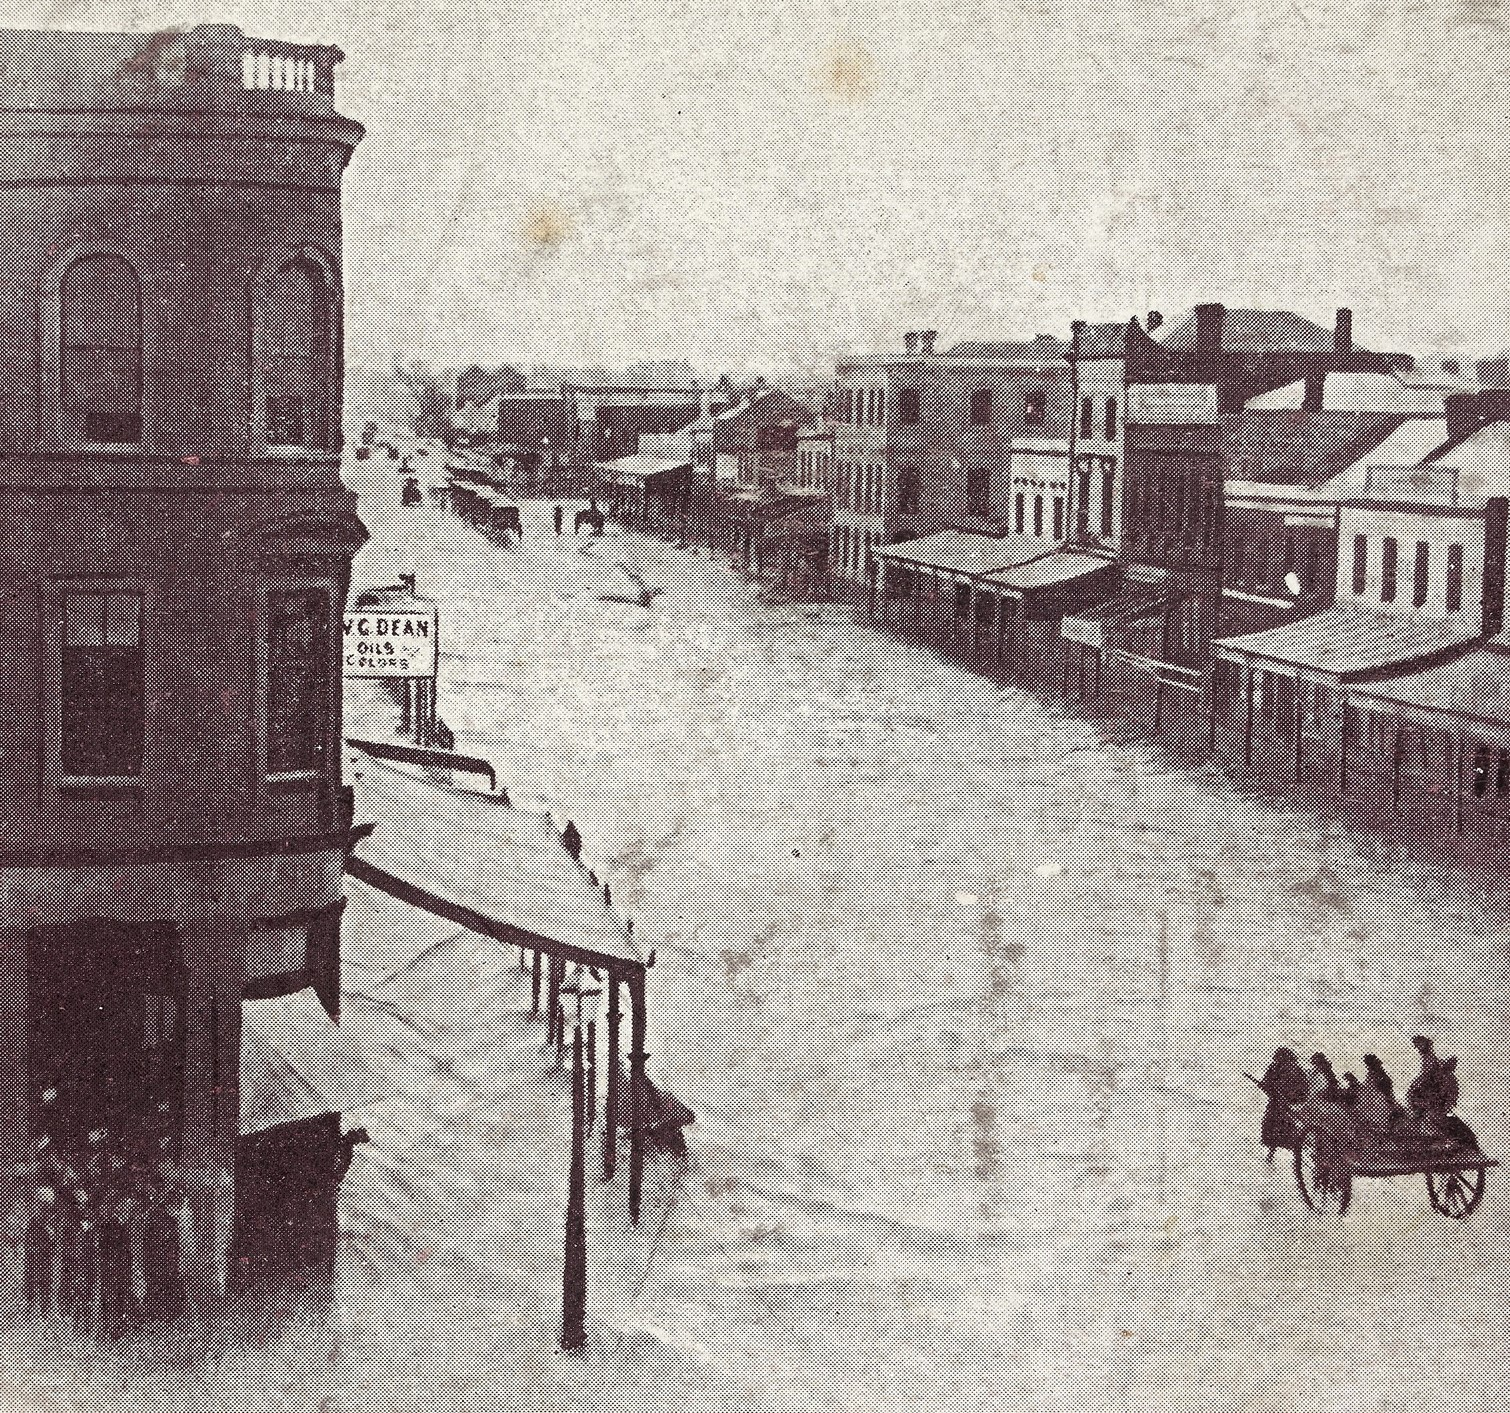 Black and white photo shows elevated view of Elizabeth Street, showing floodwater covering lower windows of buildings and posts of porches, horse and cart being driven through floodwater.